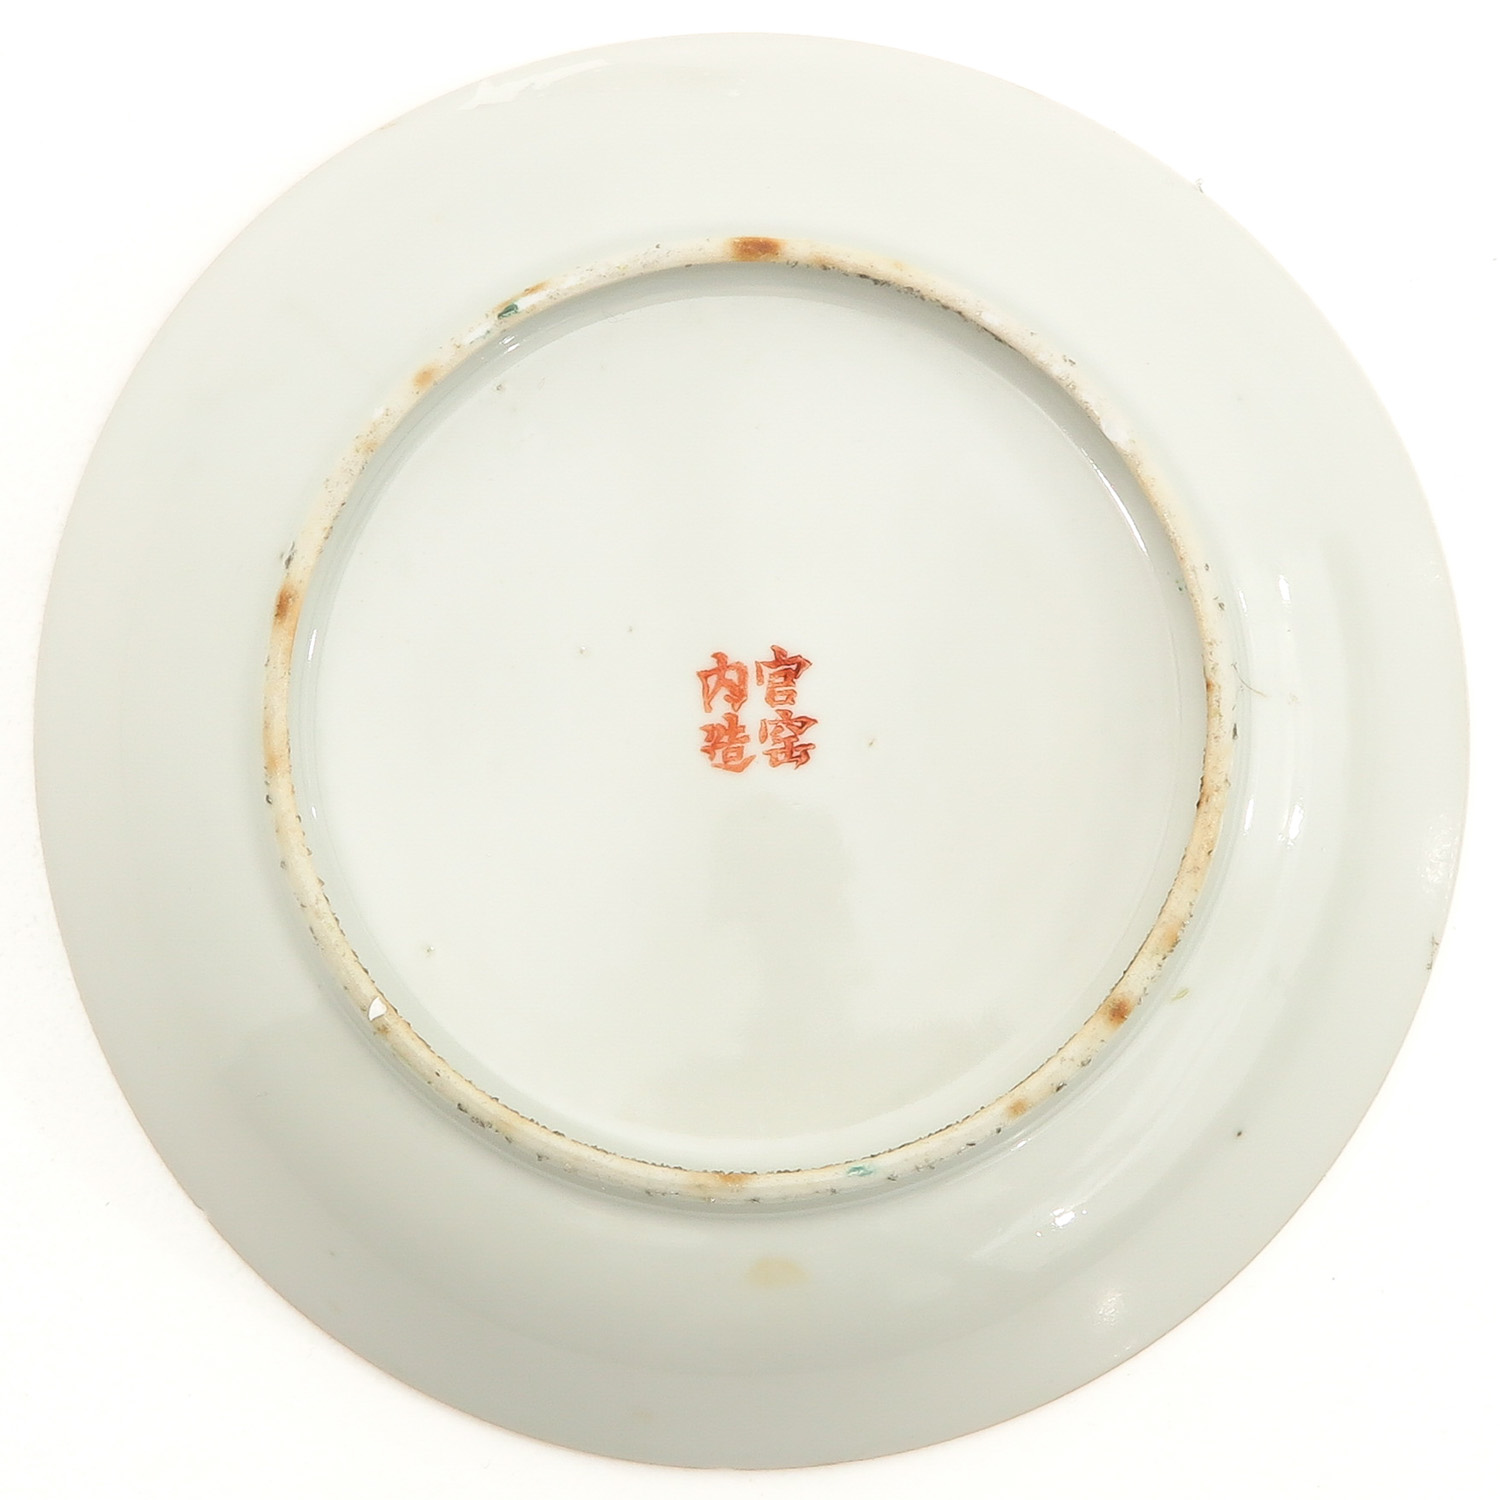 A Series of 3 Famille Rose Plates - Image 4 of 10